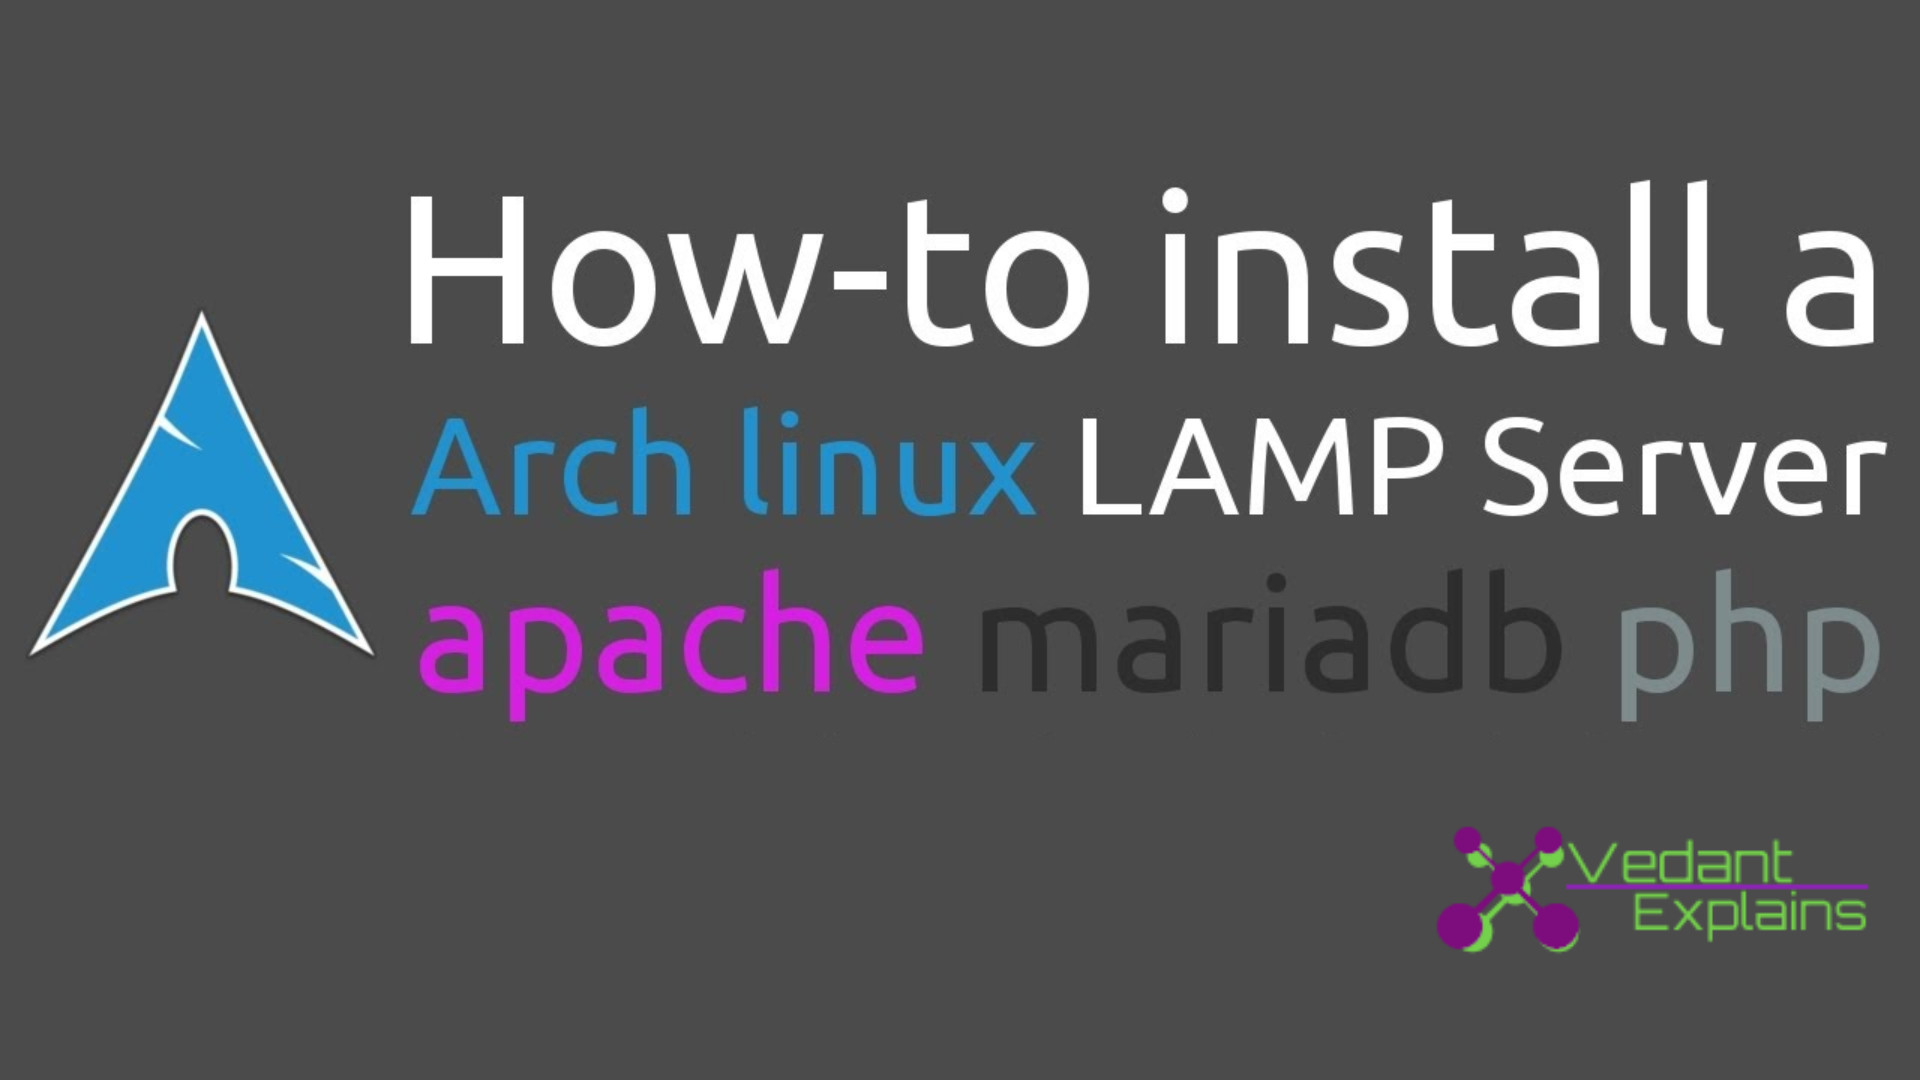 Install Apache, MariaDB, PHP (LAMP) stack on Arch Linux